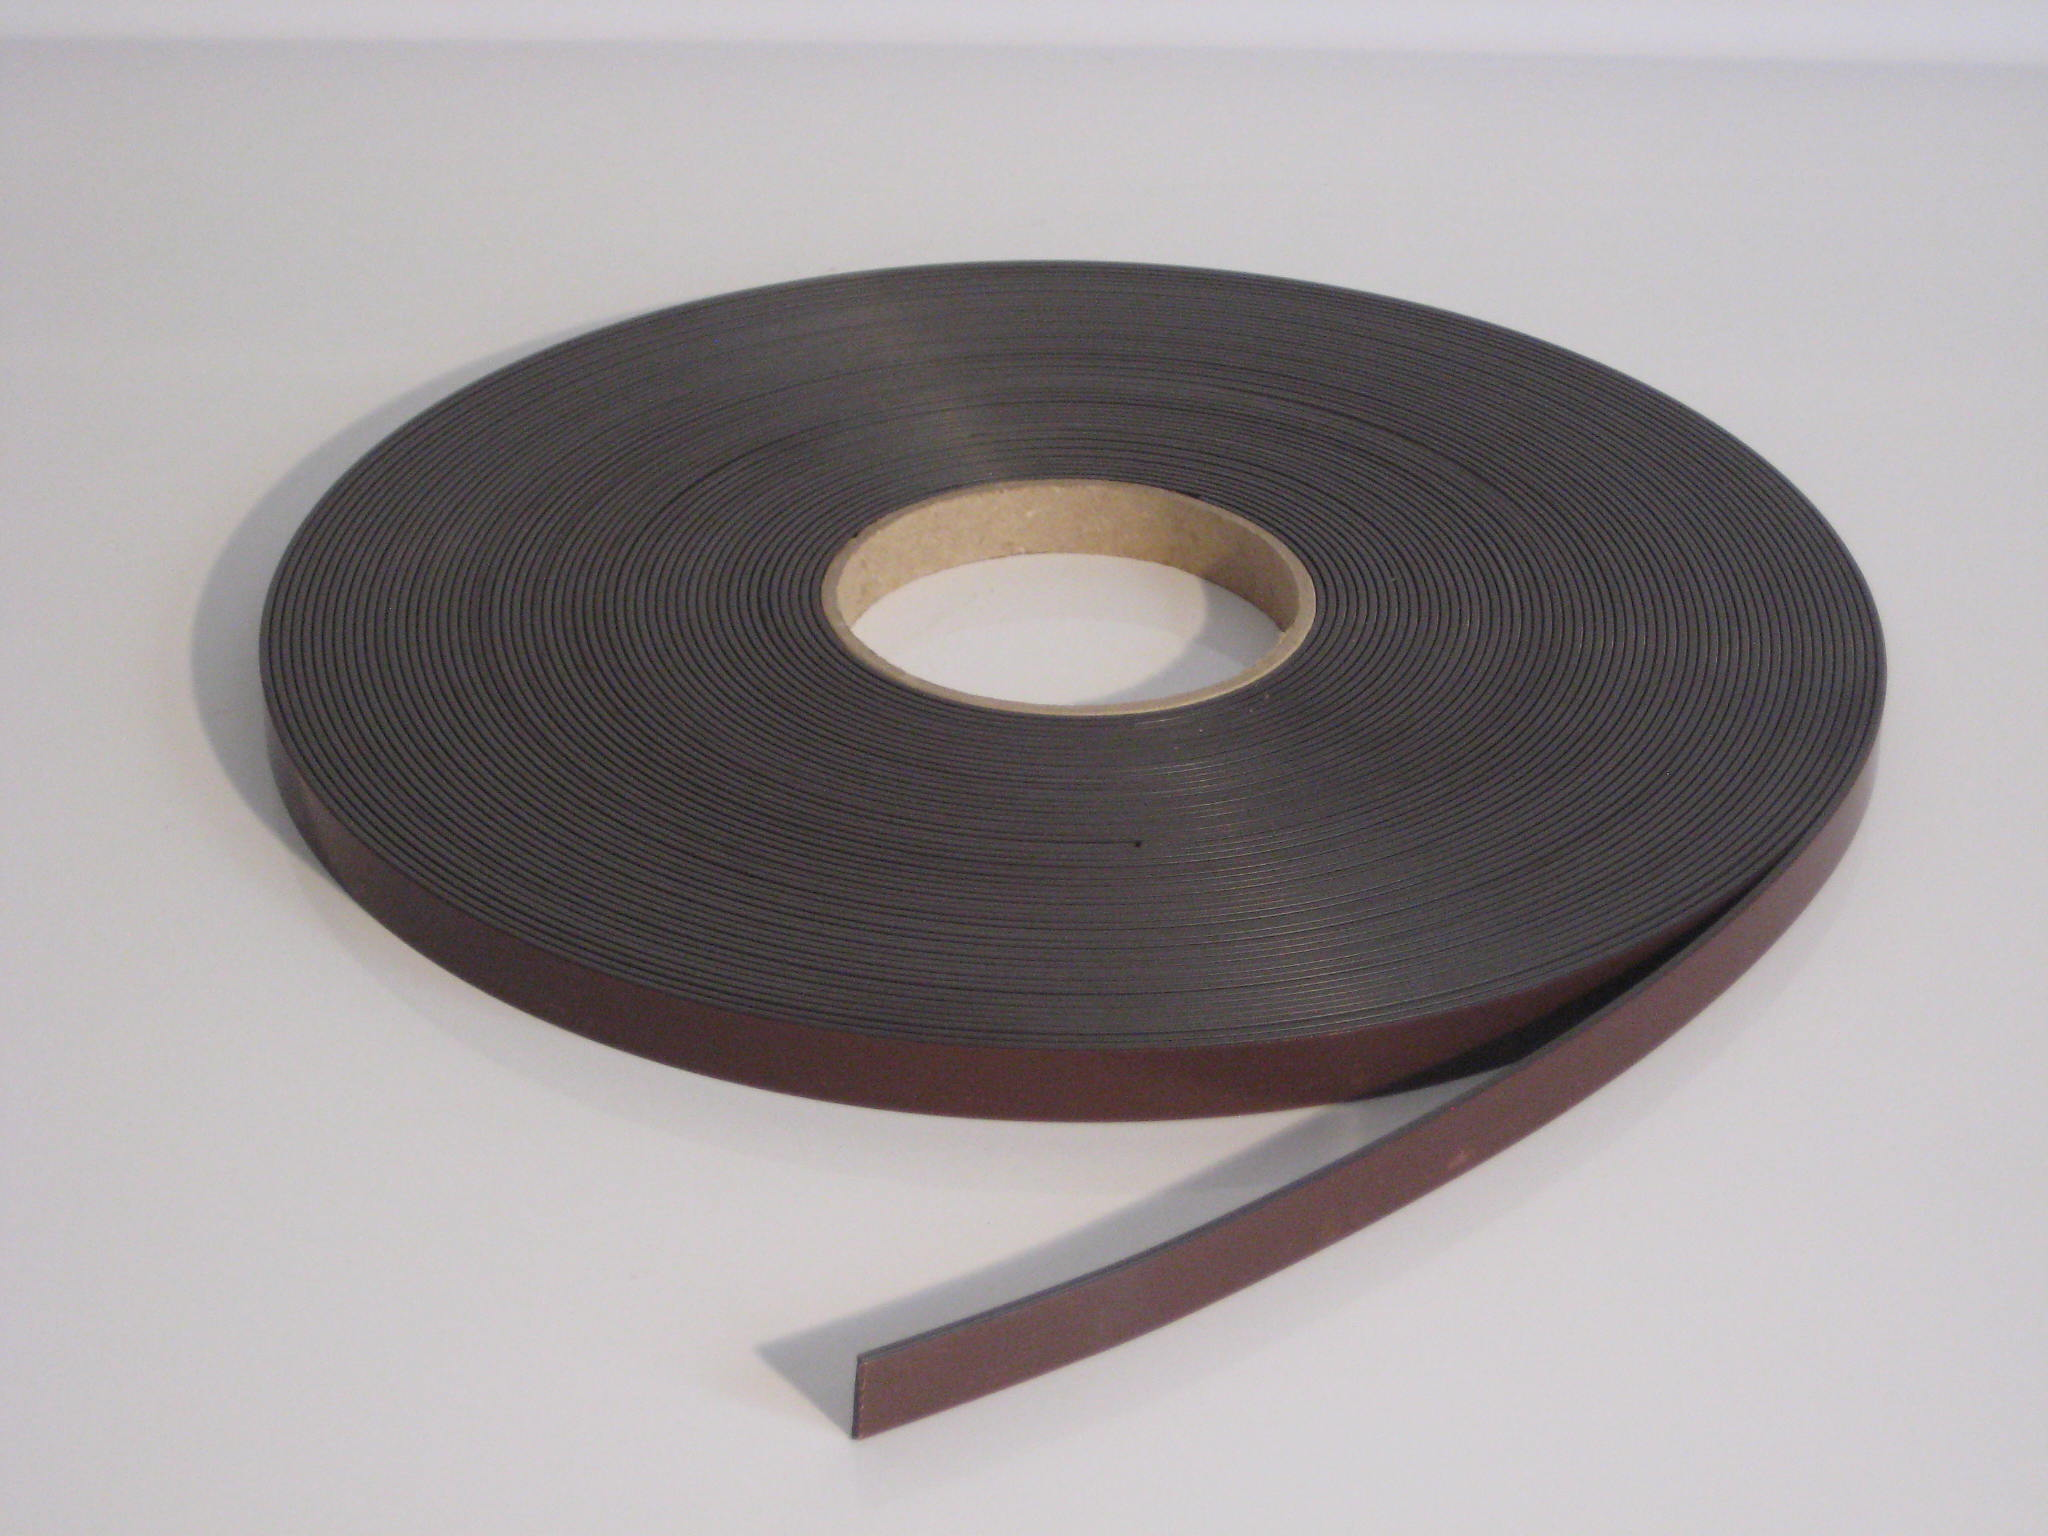 12 7mm X 1 5mm Standard Self Adhesive Magnetic Tape Type